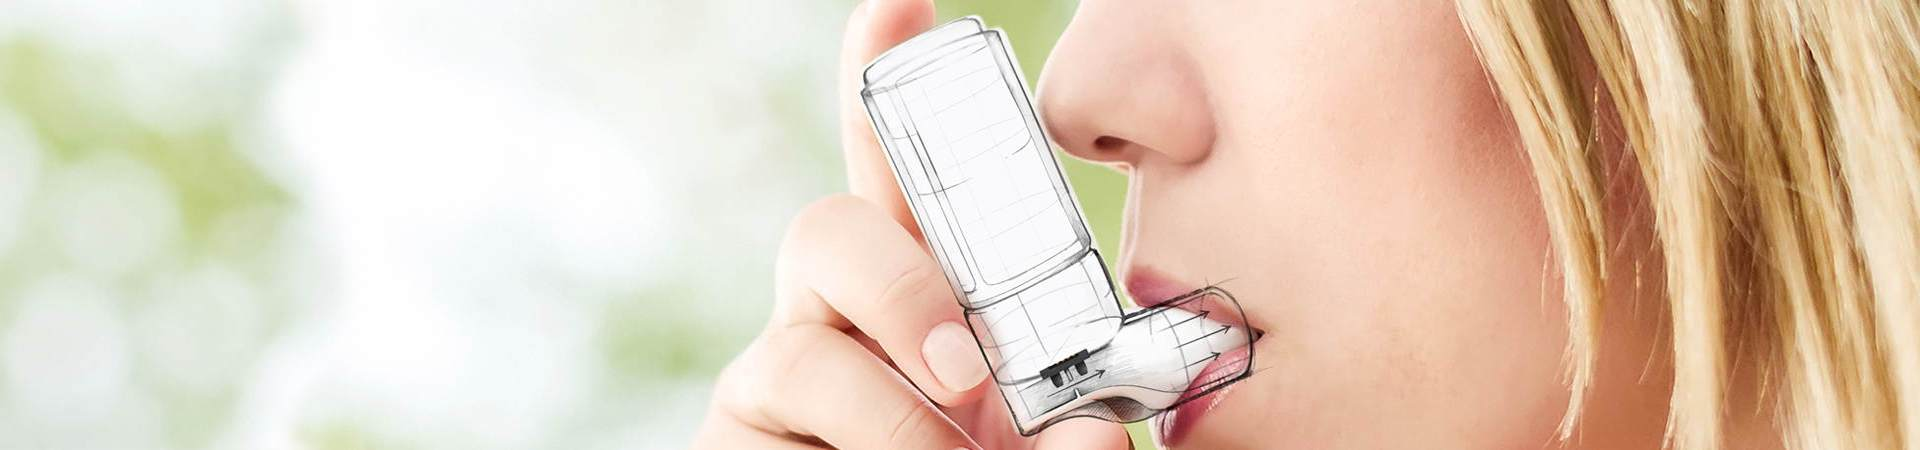 Sensirion Medical Application Inhaler